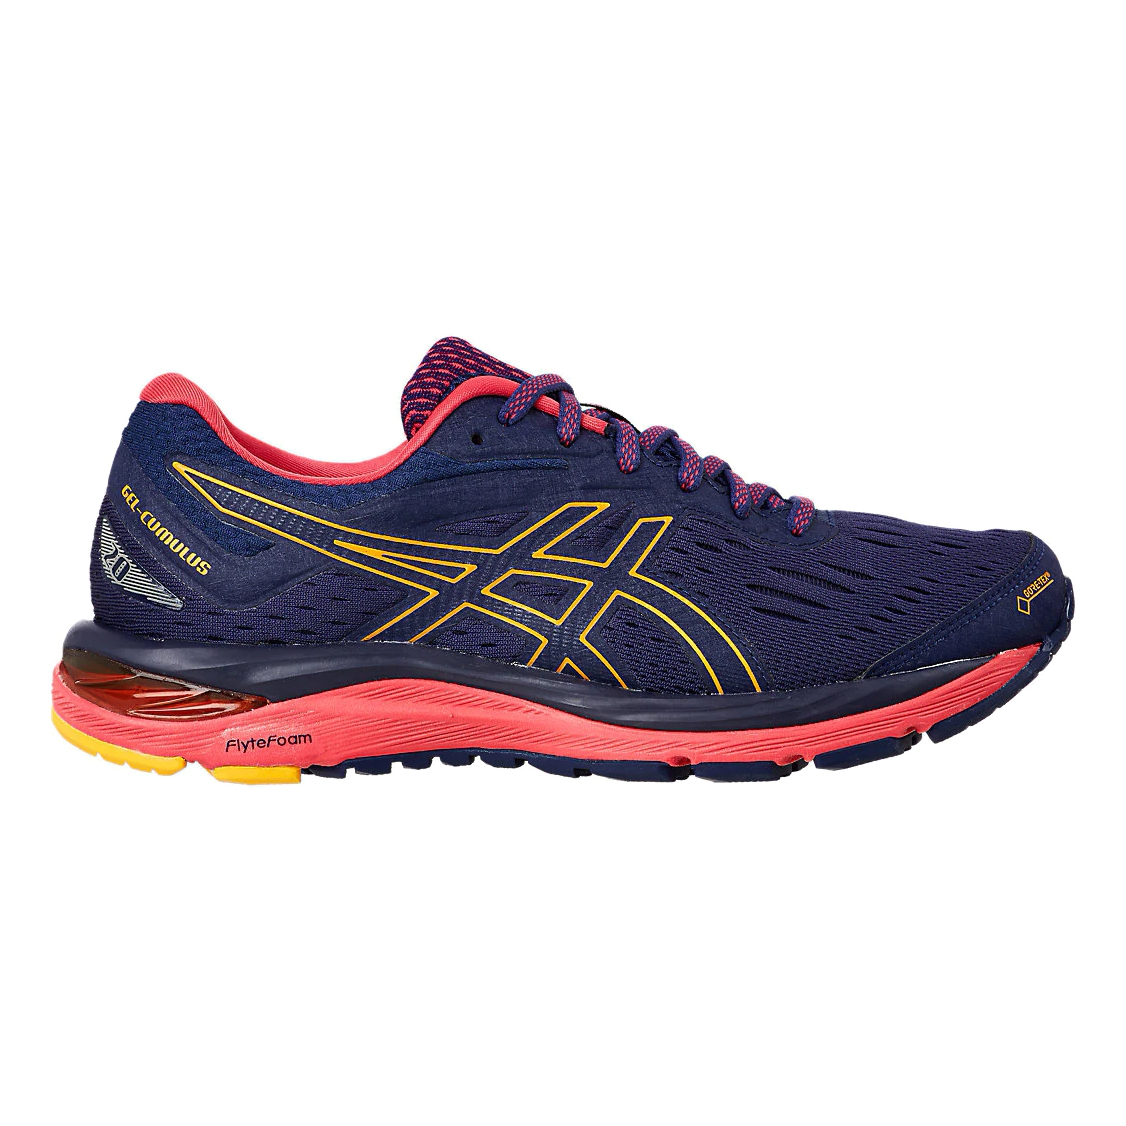 Running shoes ASICS (GEL-CUMULUS 20 G-TX) Female TmallFS SportFS цены онлайн